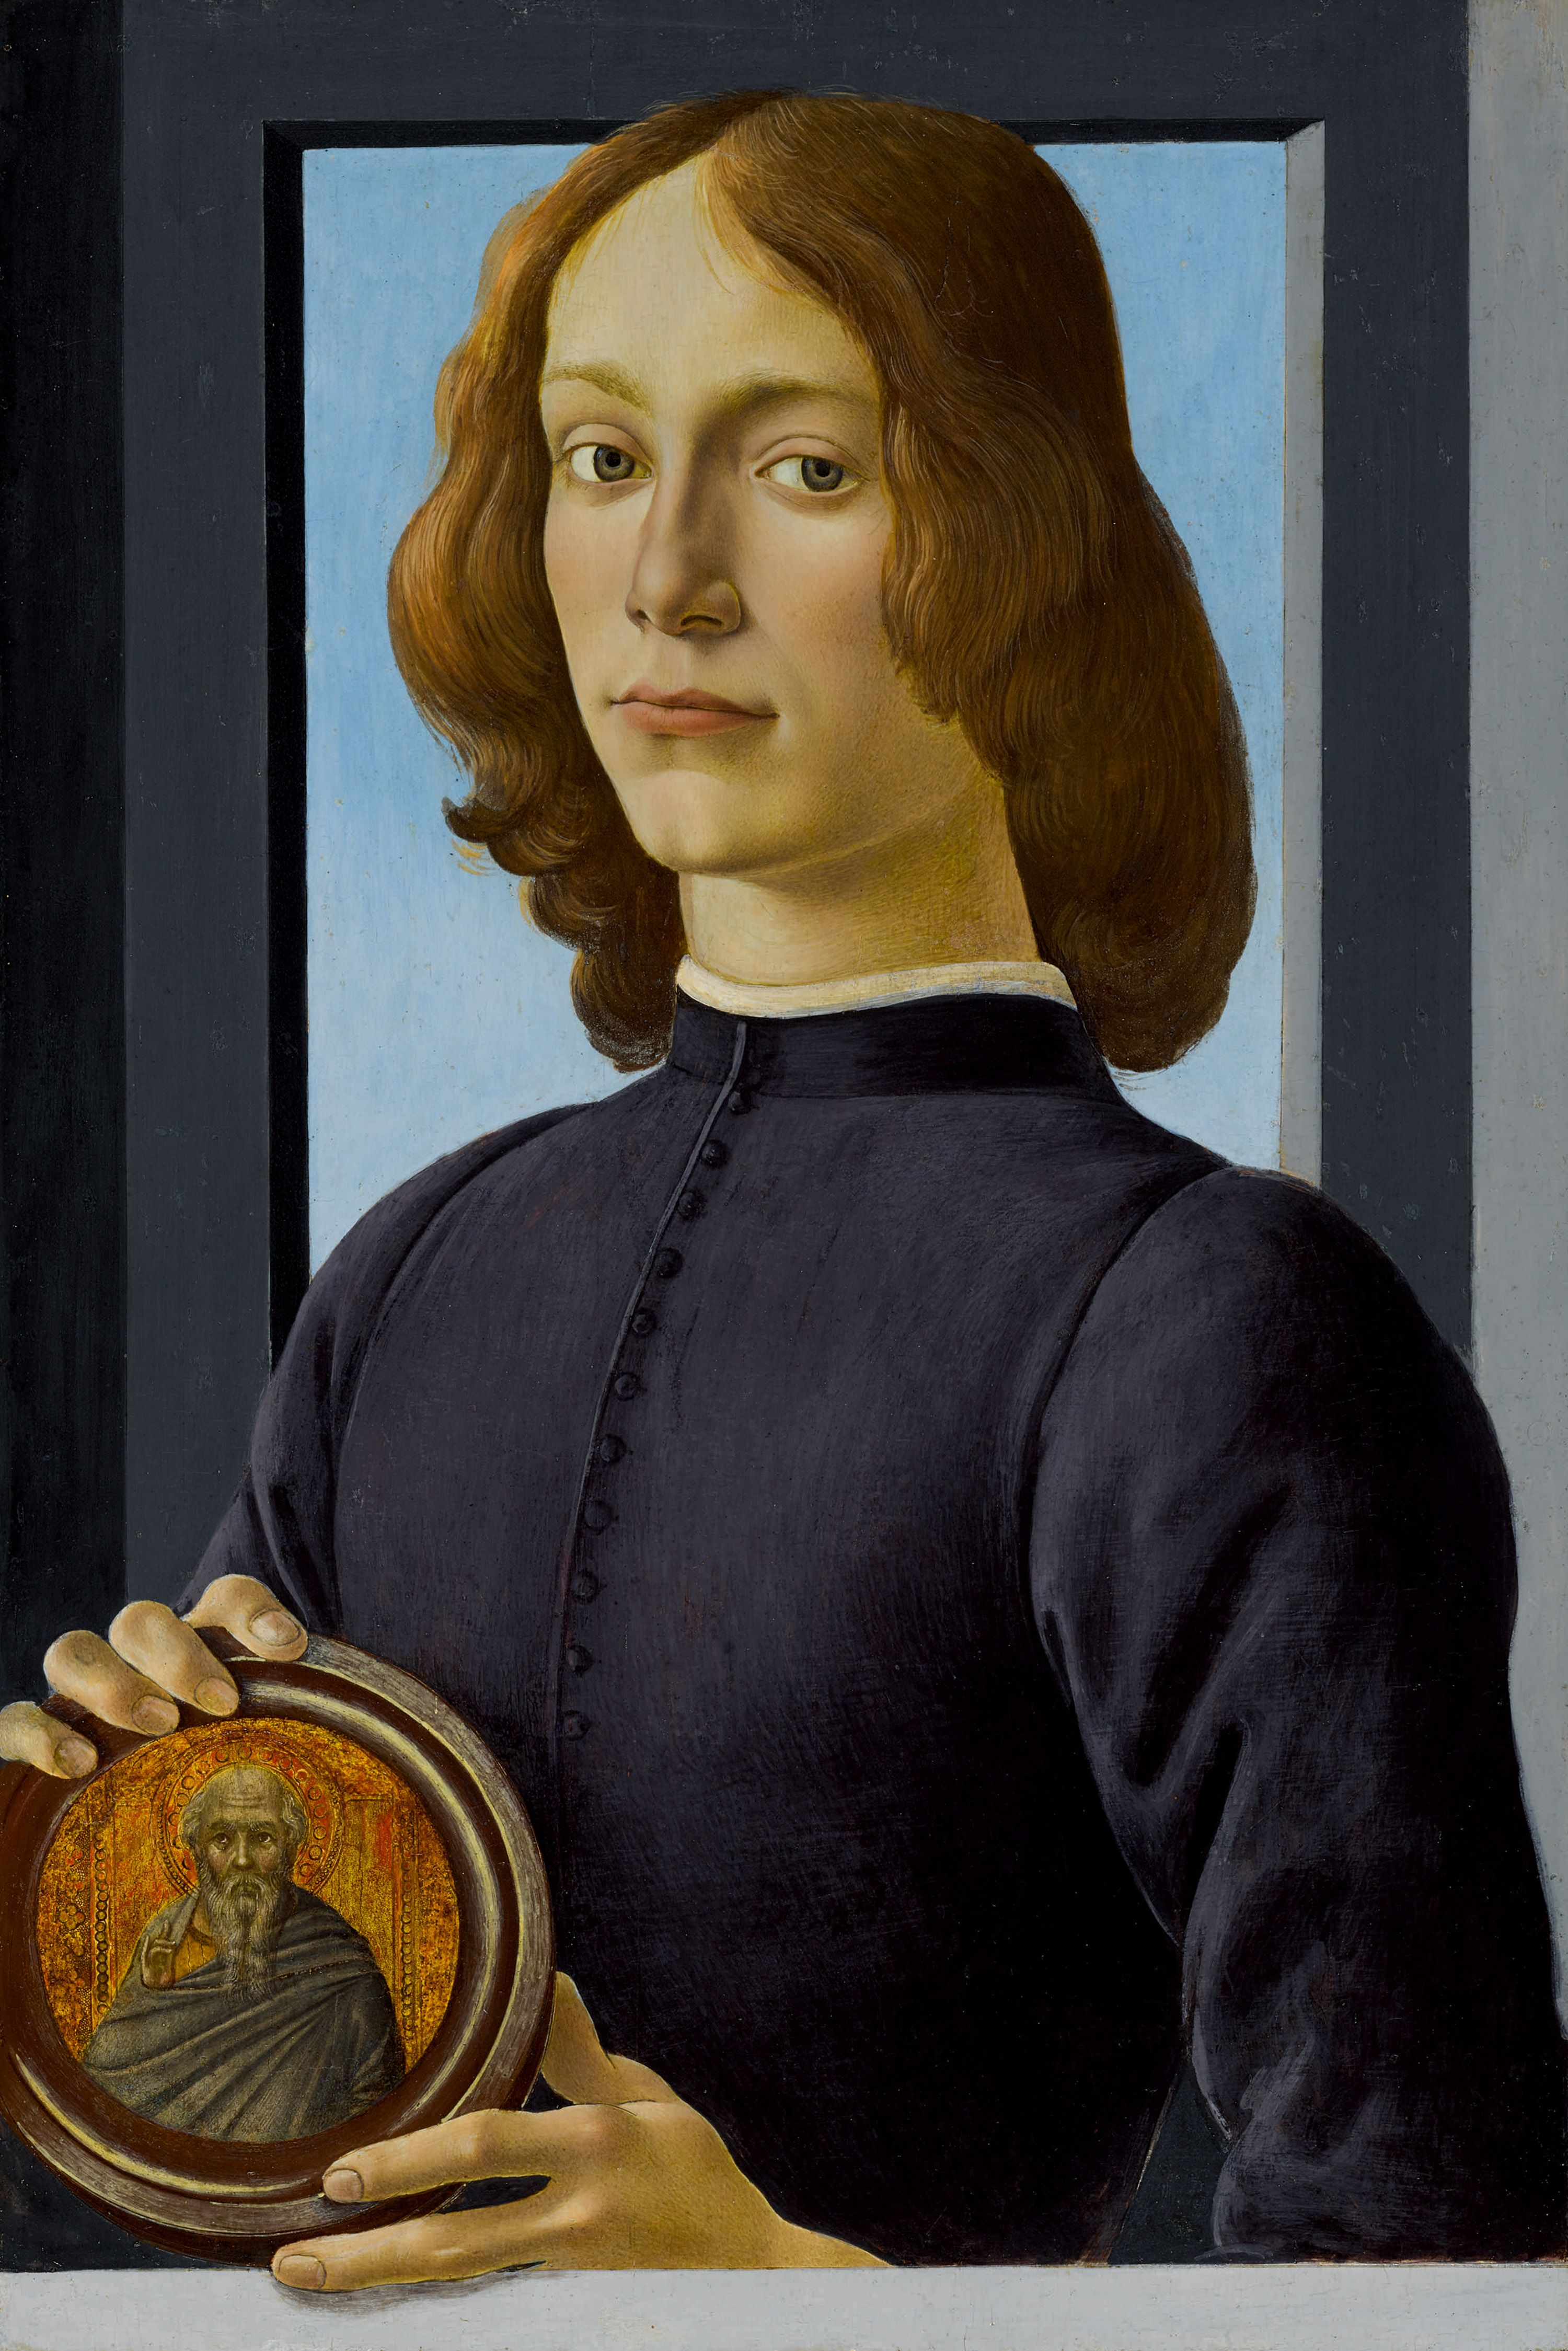 Sandro Botticelli's Young Man Holding a Roundel will be offered for $80m in January as the highlight of Sotheby's Masters Week series of sales in New York.